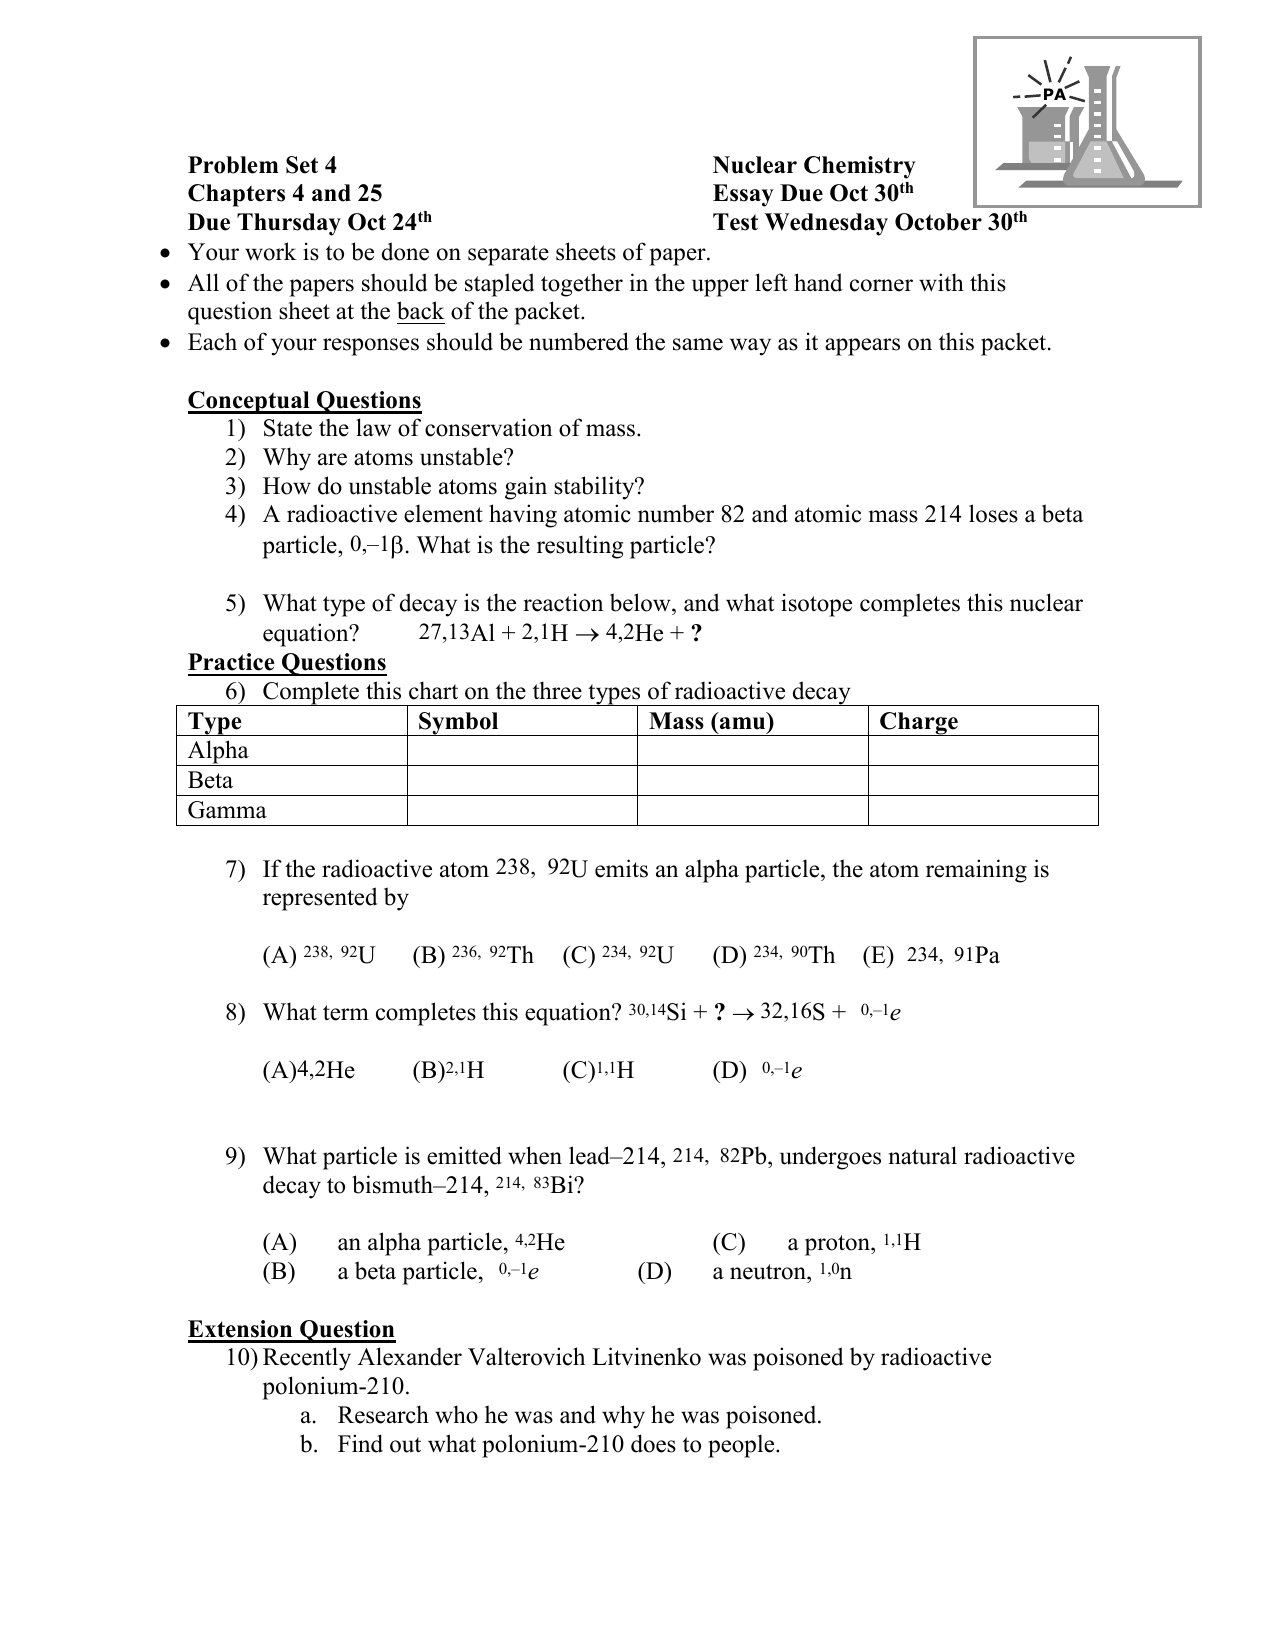 Chapter 25 Nuclear Chemistry Worksheet Answers